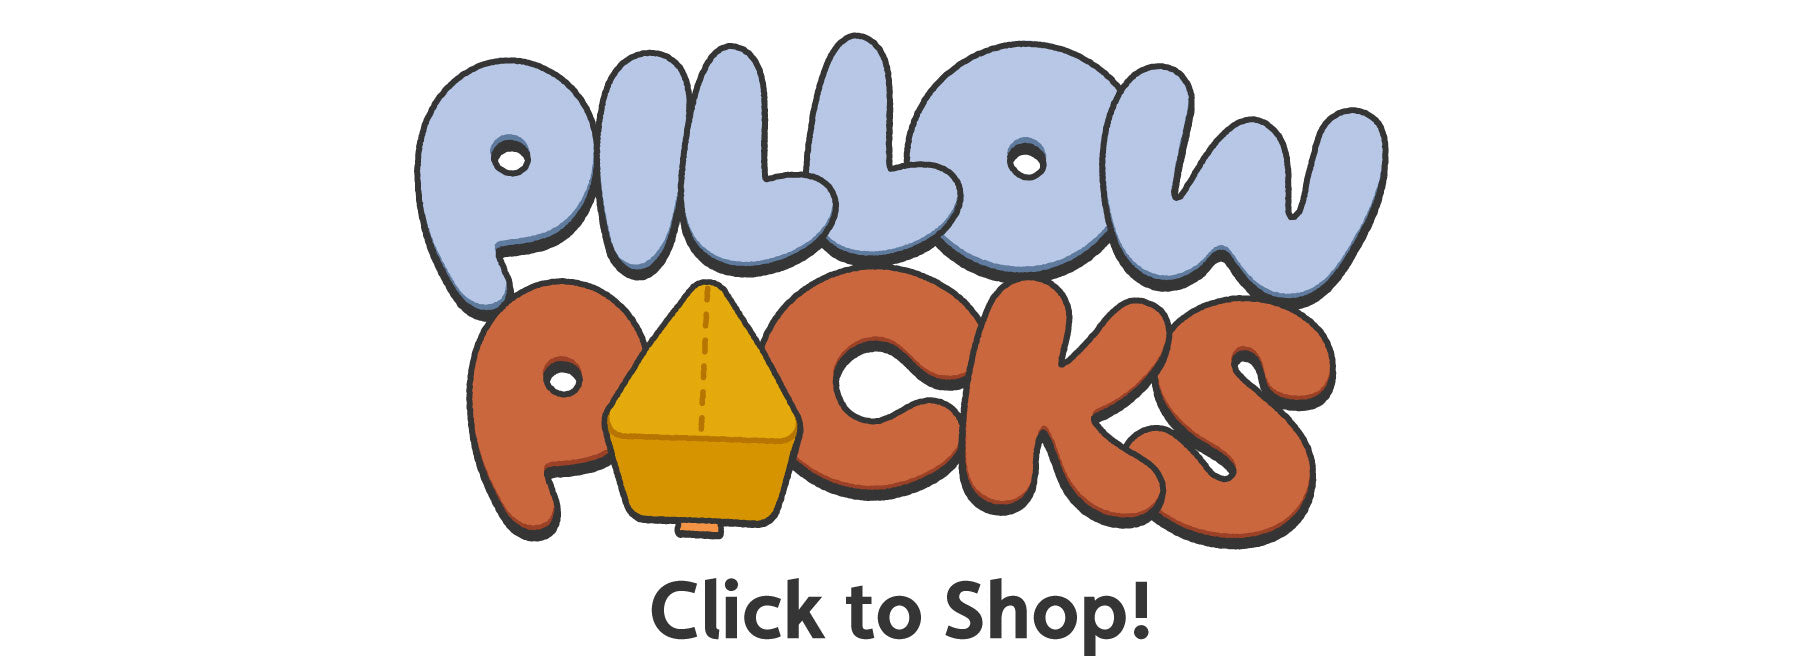 Pillow Packs: Click to Shop